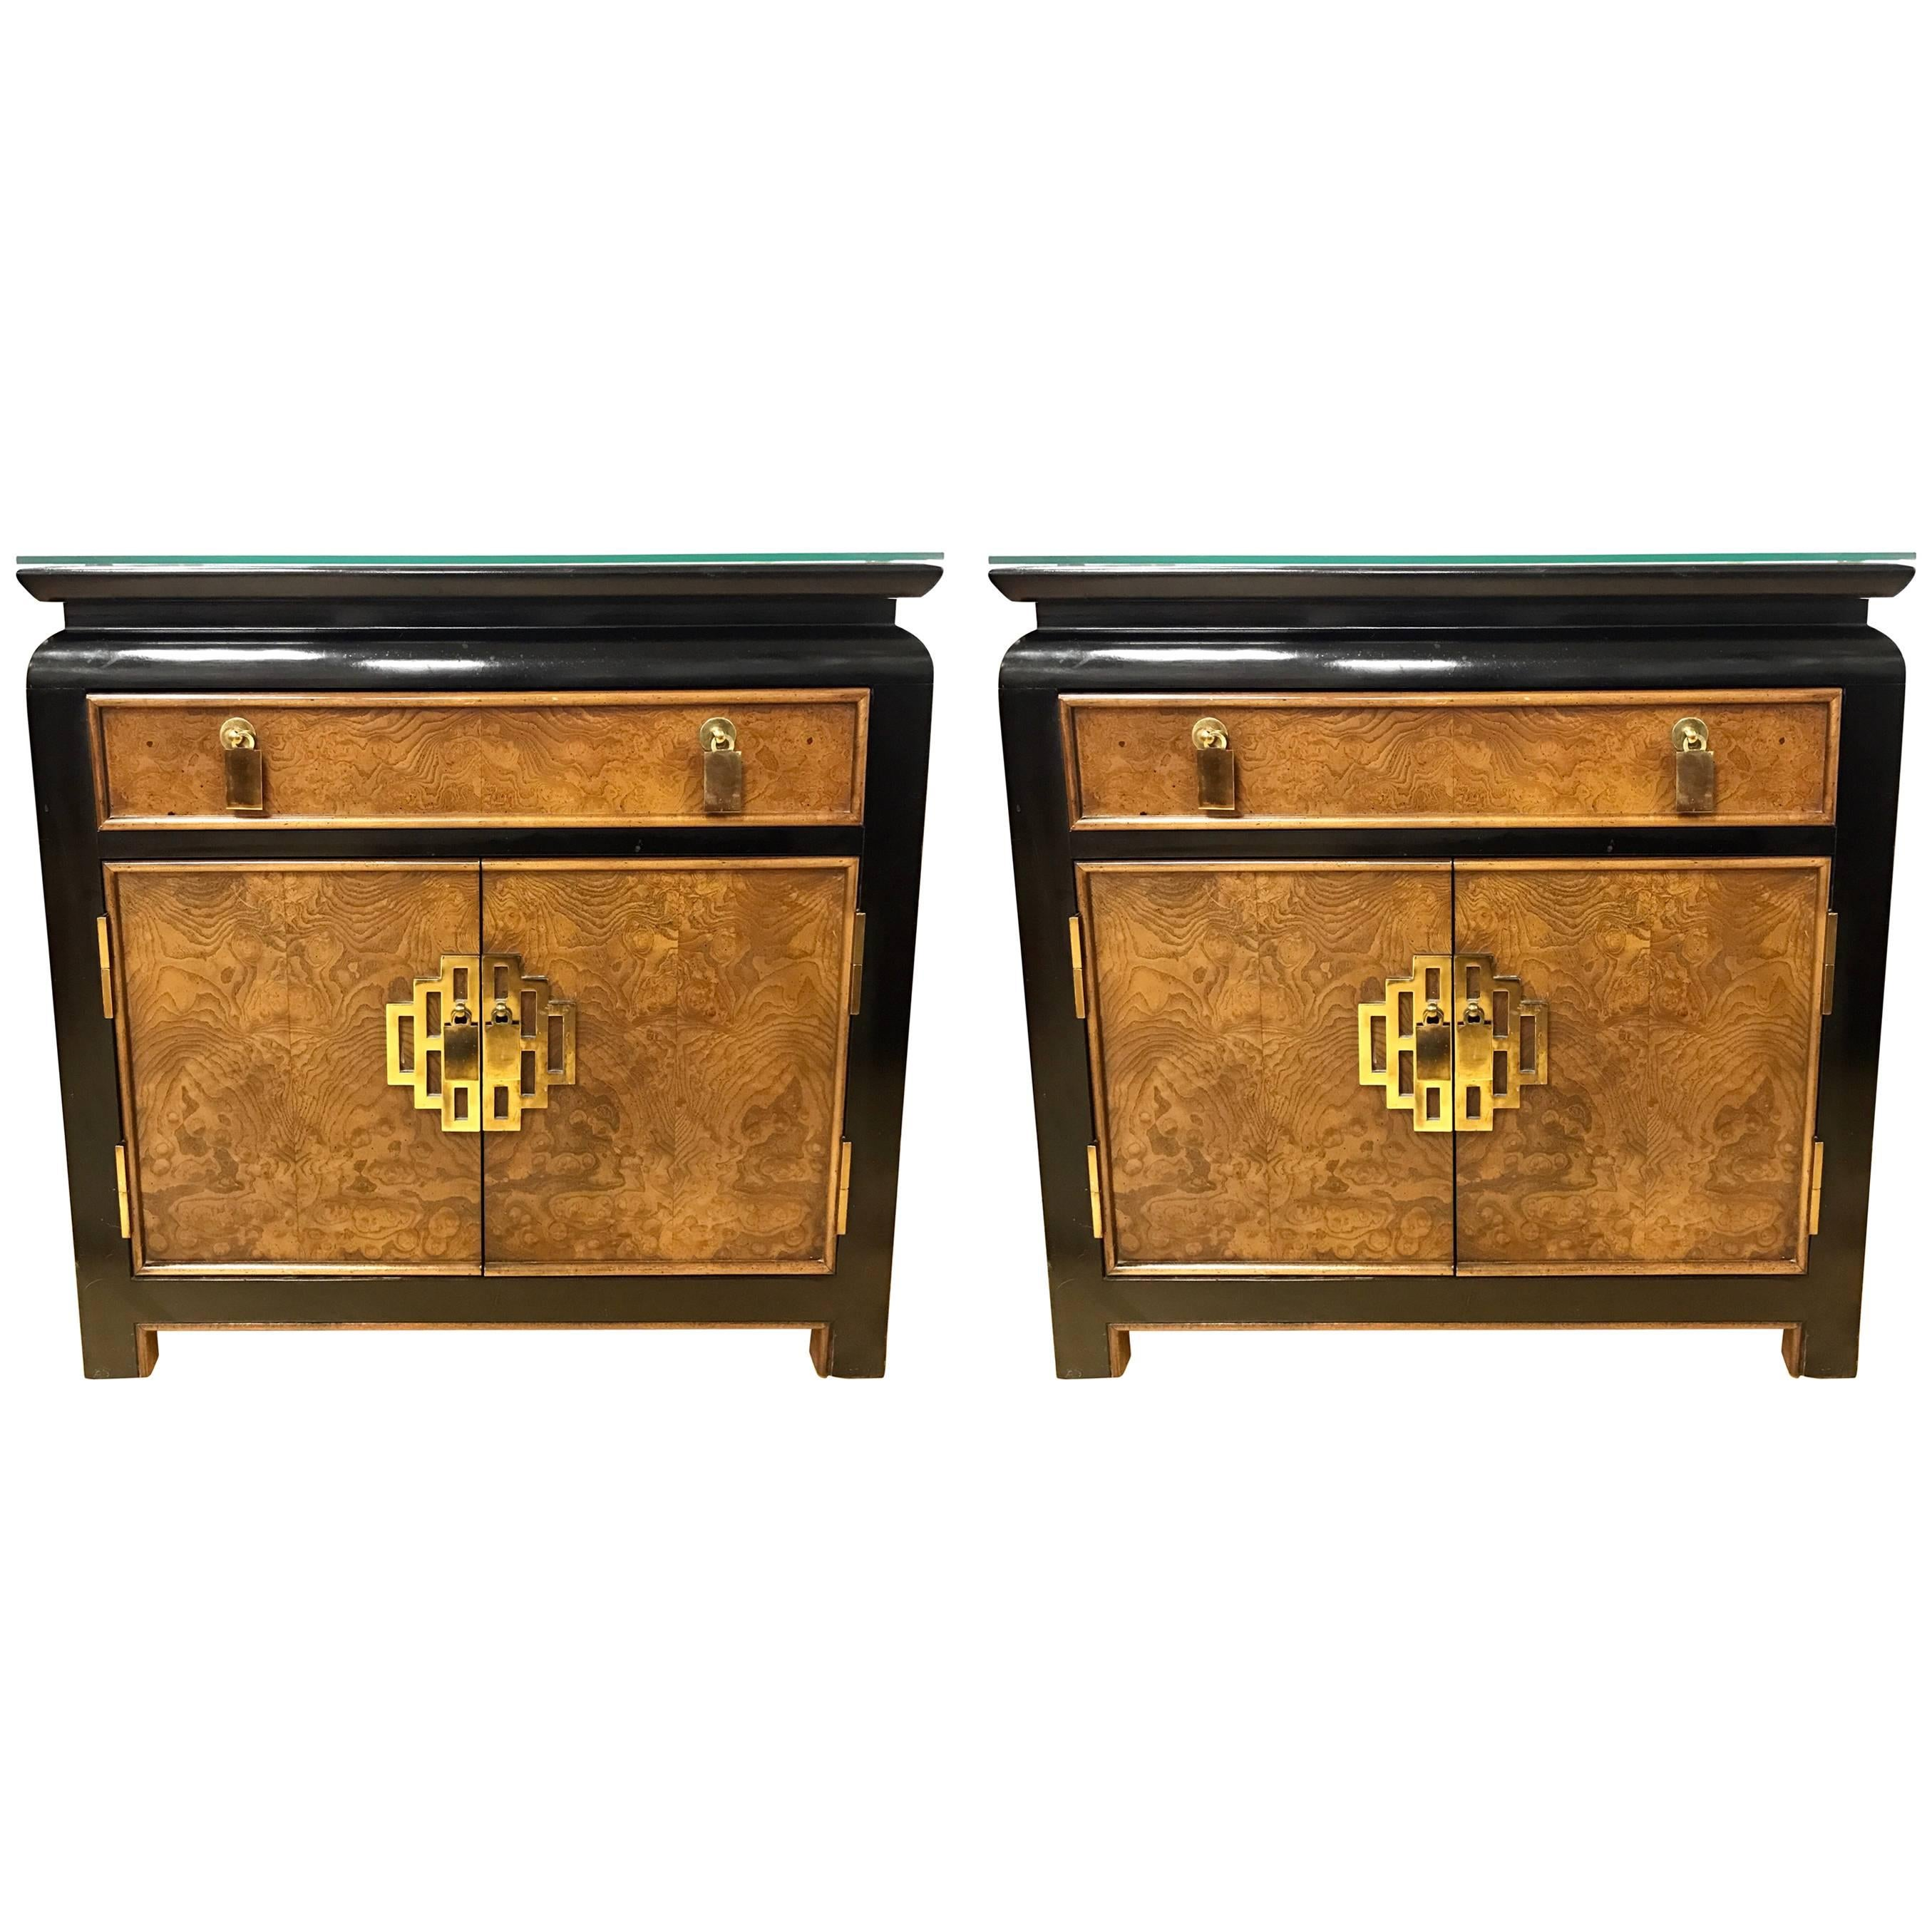 Pair of Century Furniture Nightstands End Tables Campaign Style